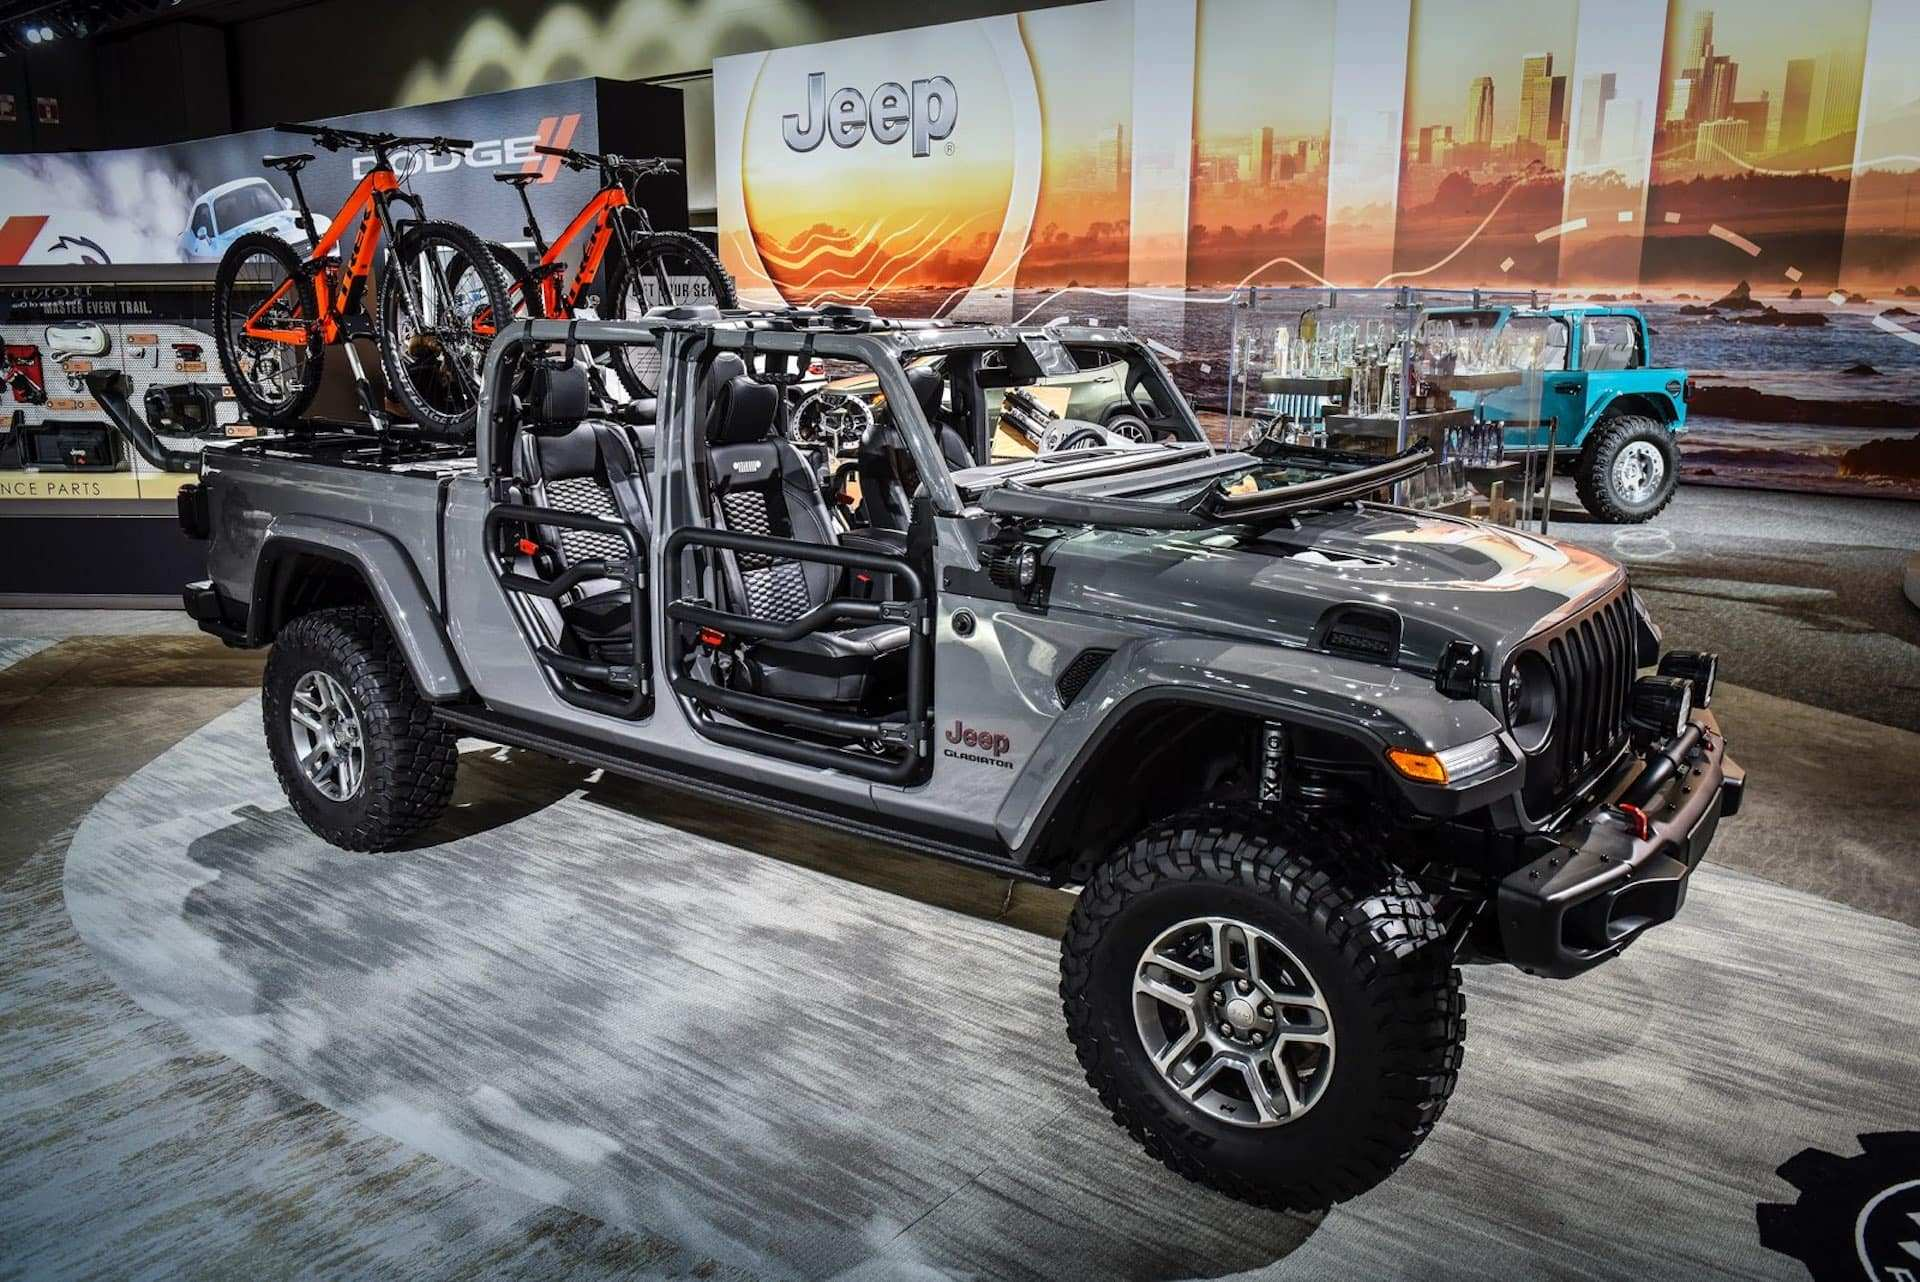 96 Concept of Best Jeep 2019 Orders Price And Release Date First Drive for Best Jeep 2019 Orders Price And Release Date